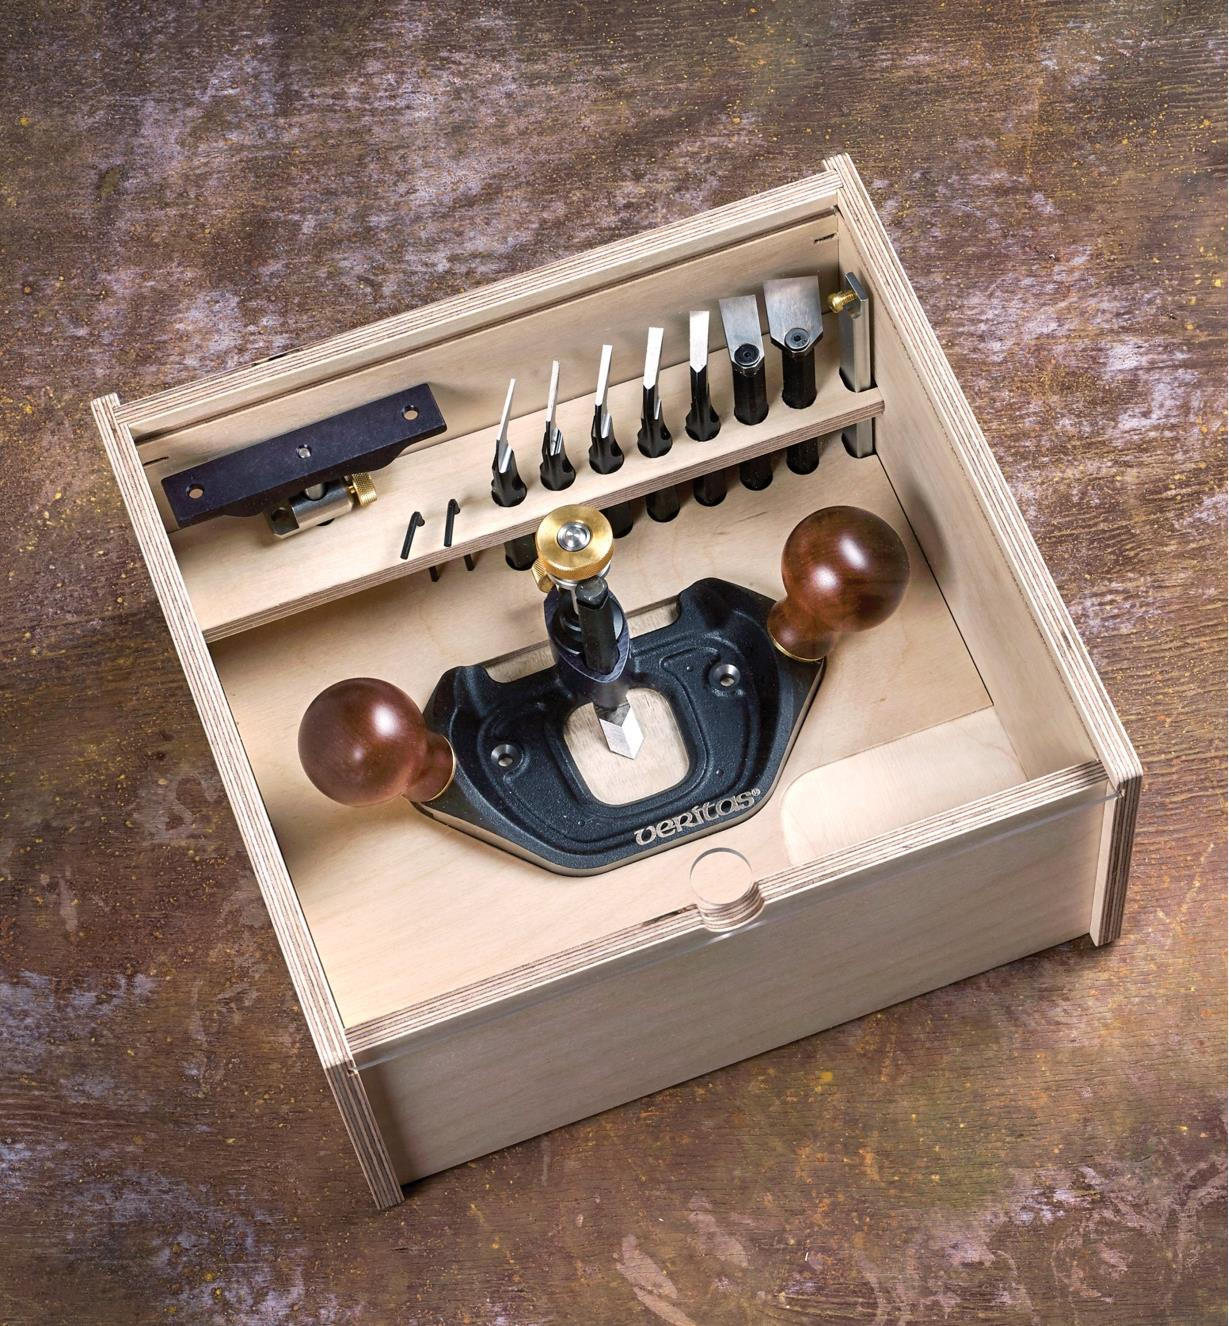 05P3892 - Large Router Plane, Box & Imperial Blades Set